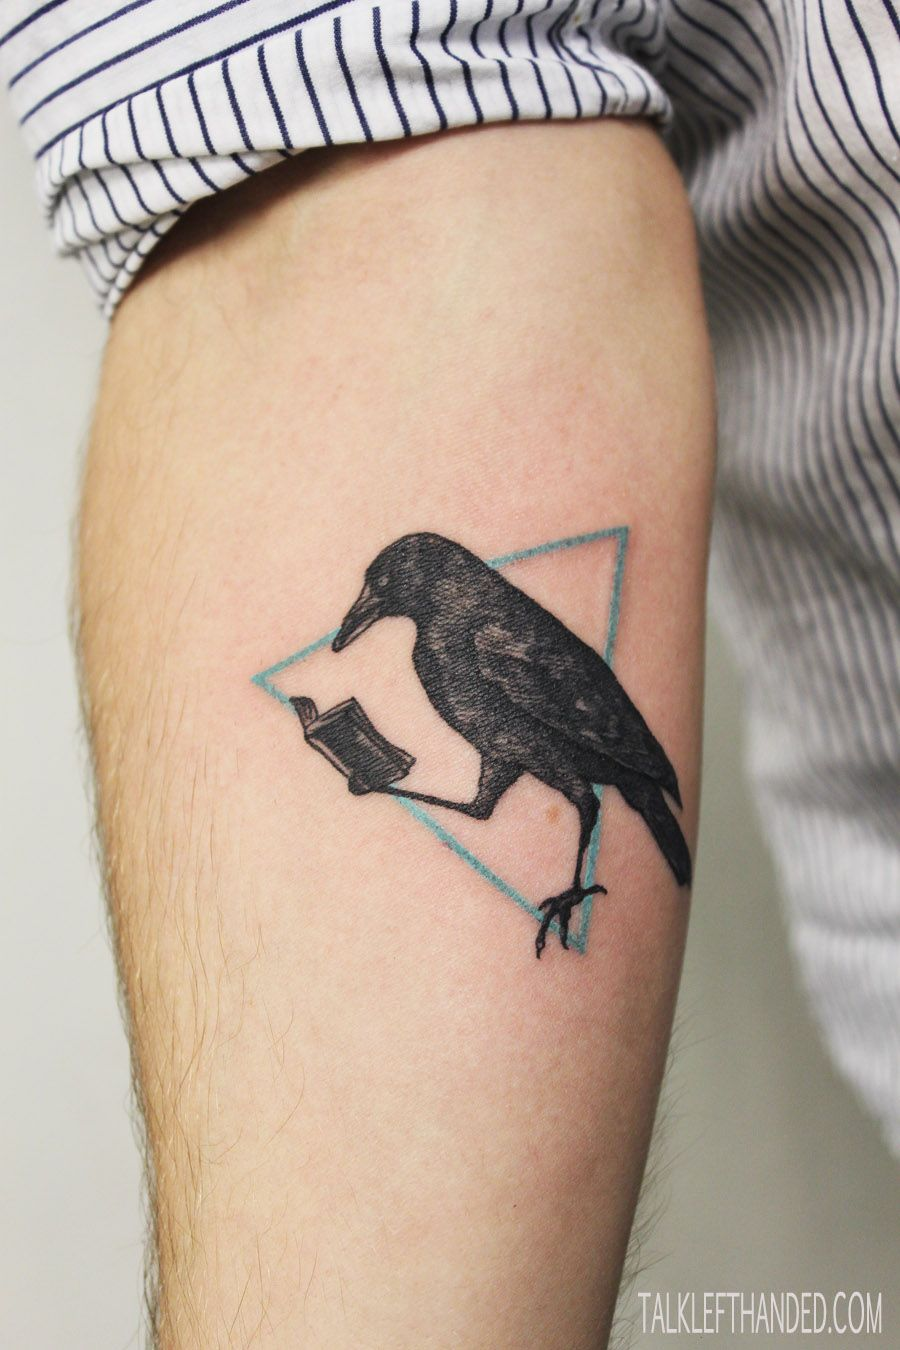 Smart raven | Cool tattoos, Tattoos for guys, Crow tattoo